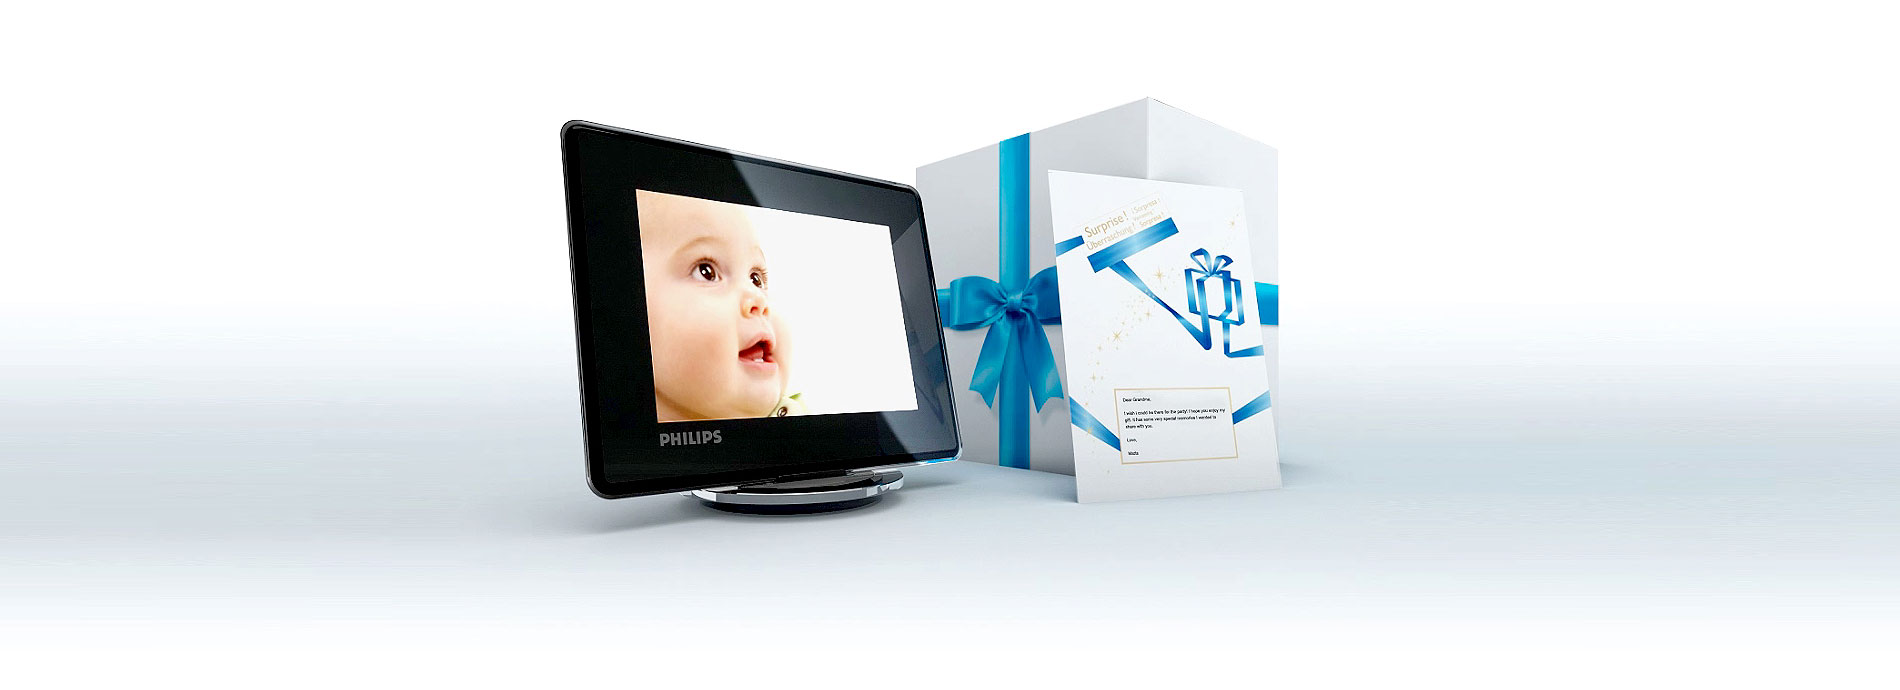 Photo of Philips PhotoFrame, gift box and gift card